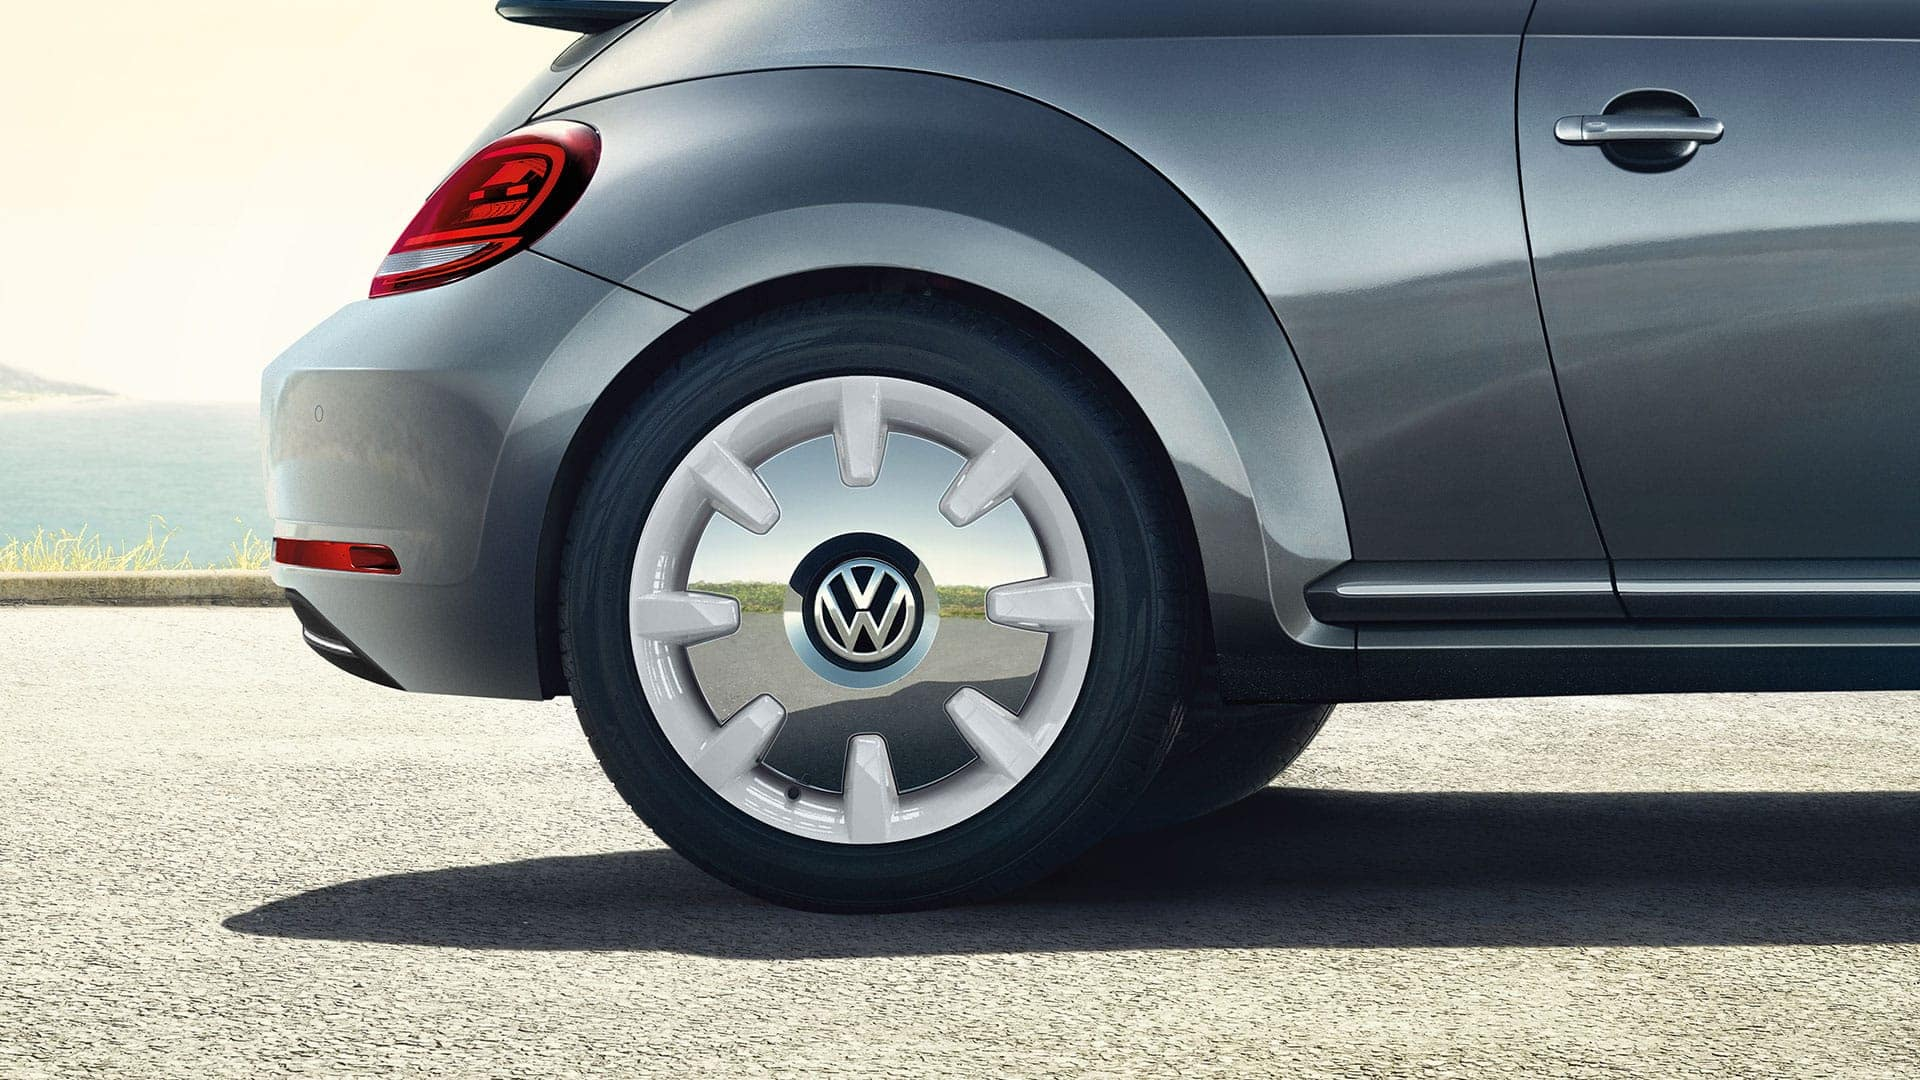 2019 VW Beetle wheels